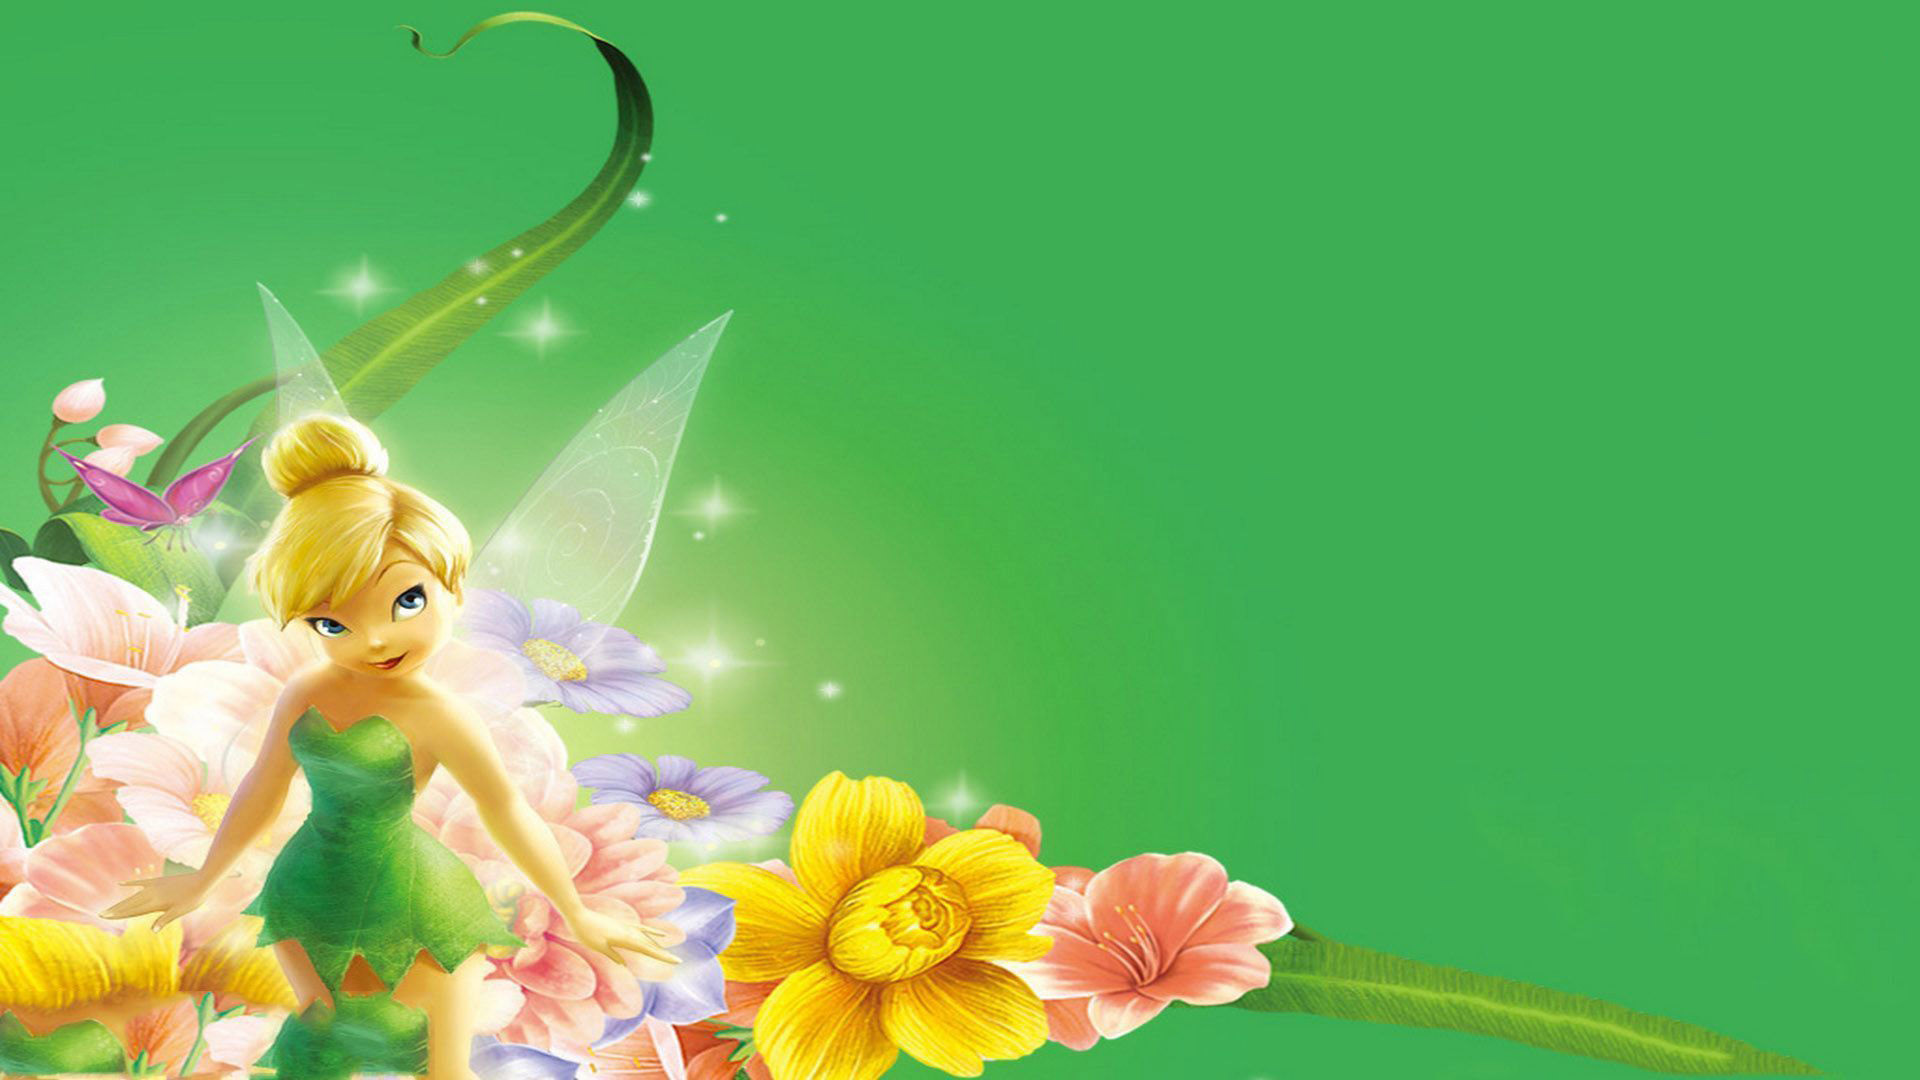 1920x1080 free hd tinkerbell pictures download full hd desktop images amazing  colourful 4k download wallpapers cool colours 1920×1080 Wallpaper HD